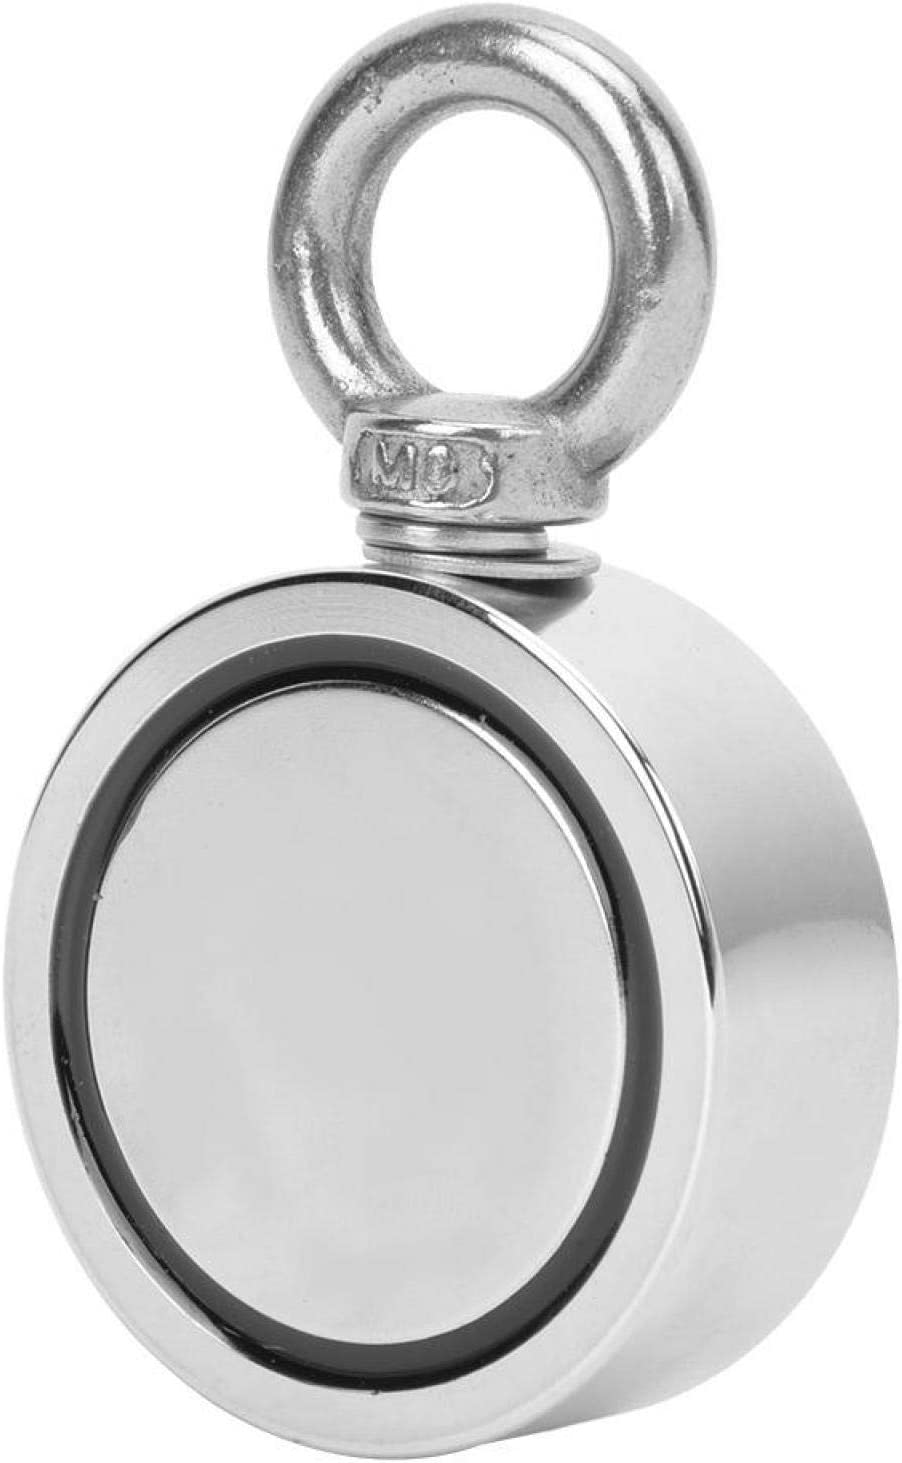 Neodymium Magnet, Oil Magnetic Salvage Ring, Easy to Use for Mag